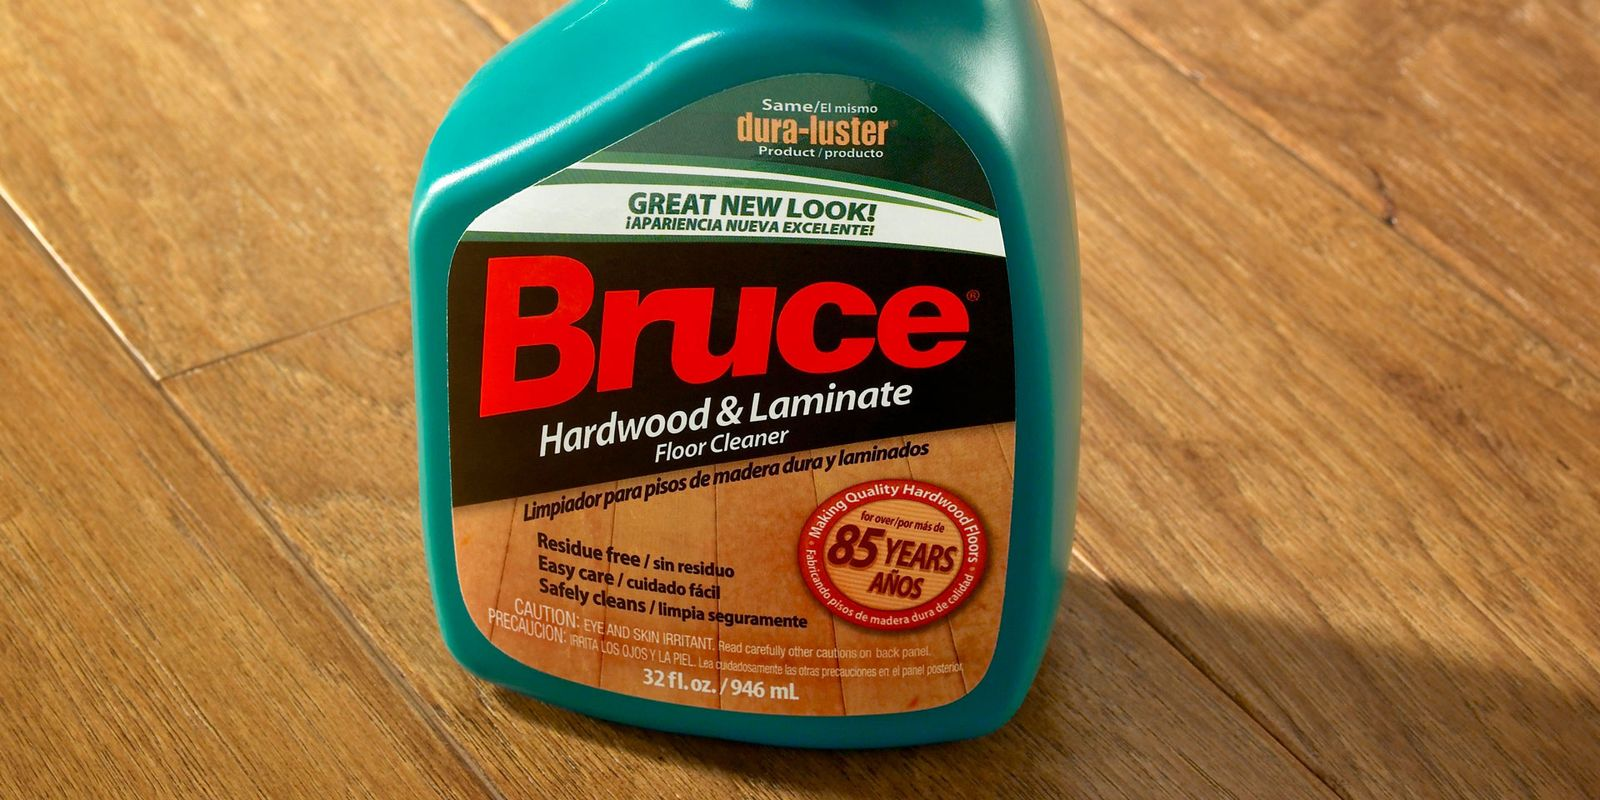 Cleaner For Laminate Floors 25 best ideas about laminate floor cleaning on pinterest diy laminate floor cleaning floor cleaning and laminate flooring cleaner Bruce Hardwood And Laminate Floor Cleaner Review